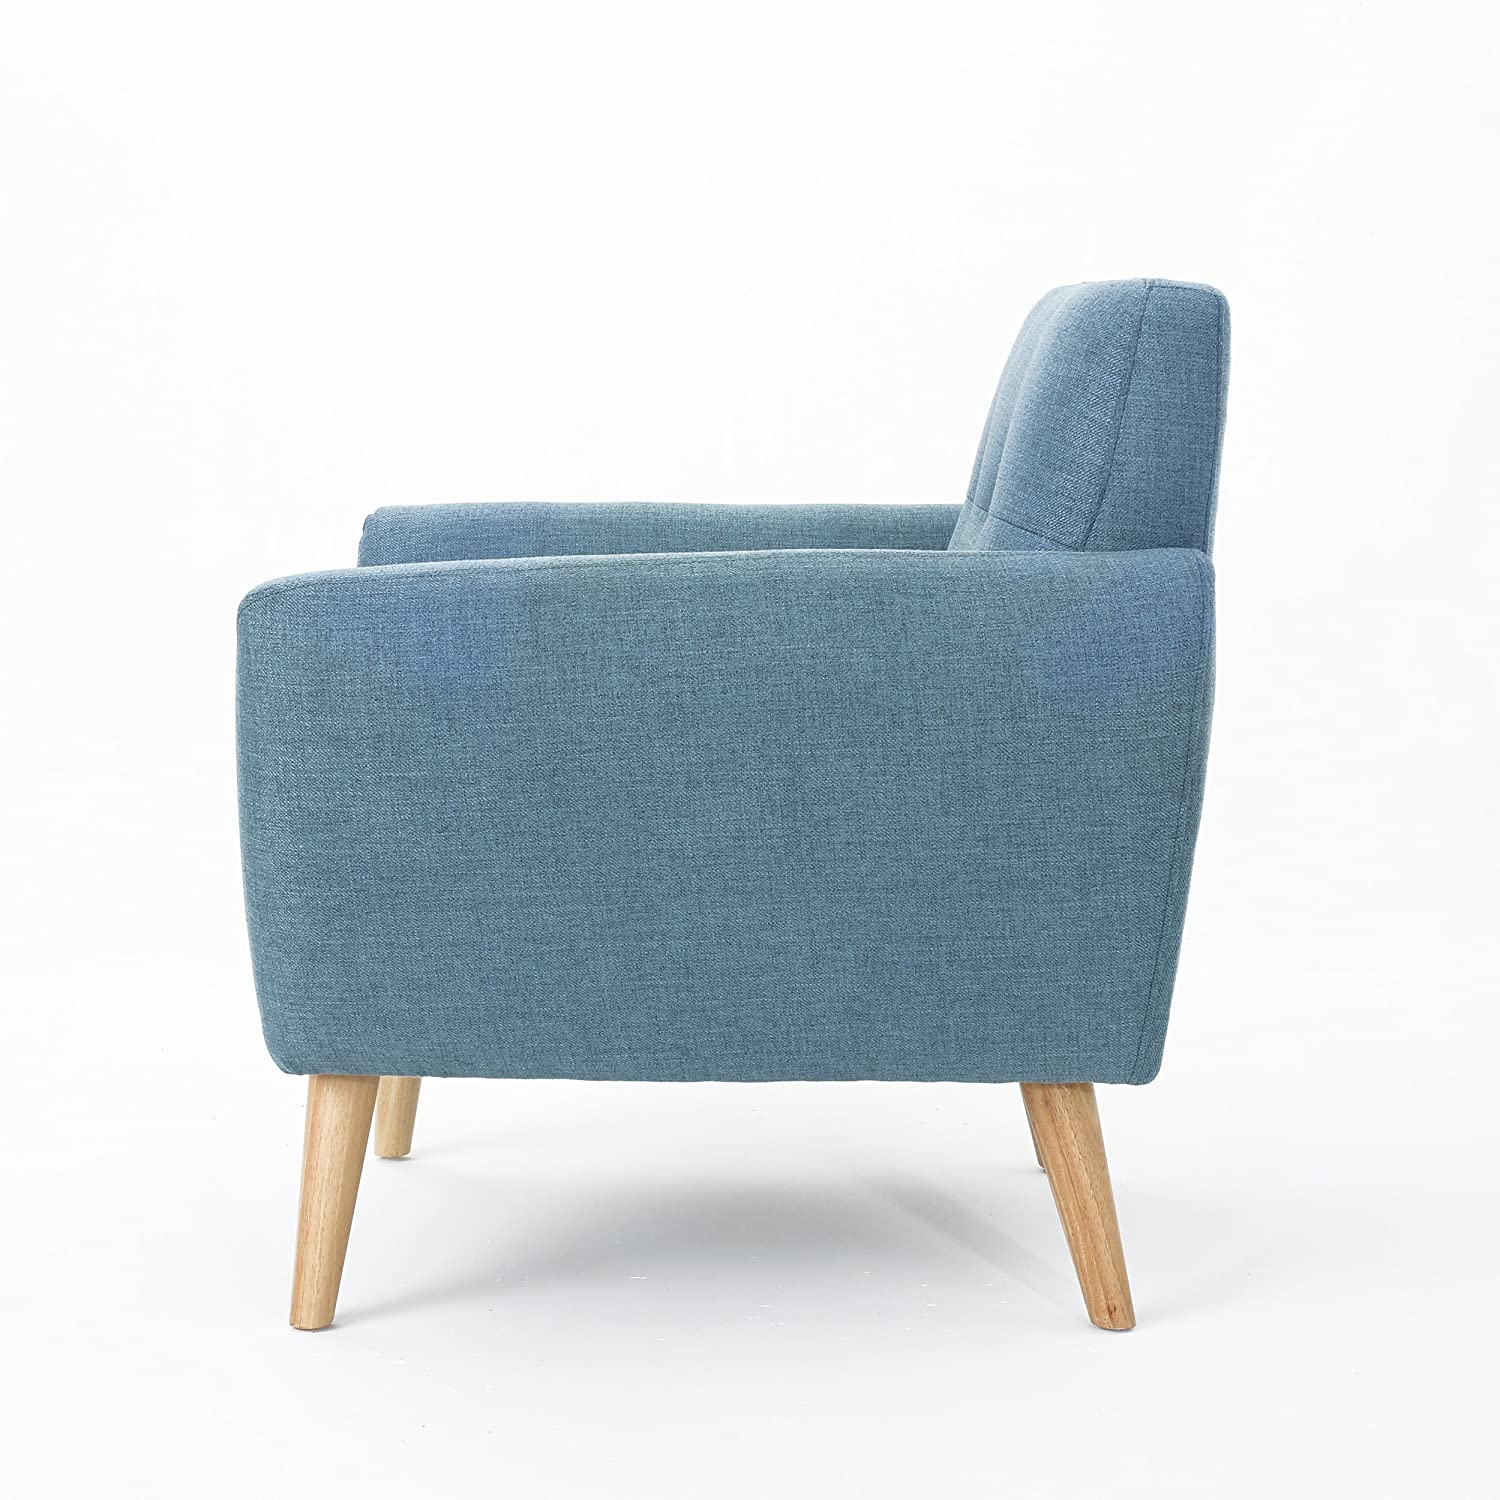 Christopher Knight Home Joseline Mid Century Modern Petite Fabric Club Chair Blue//Natural